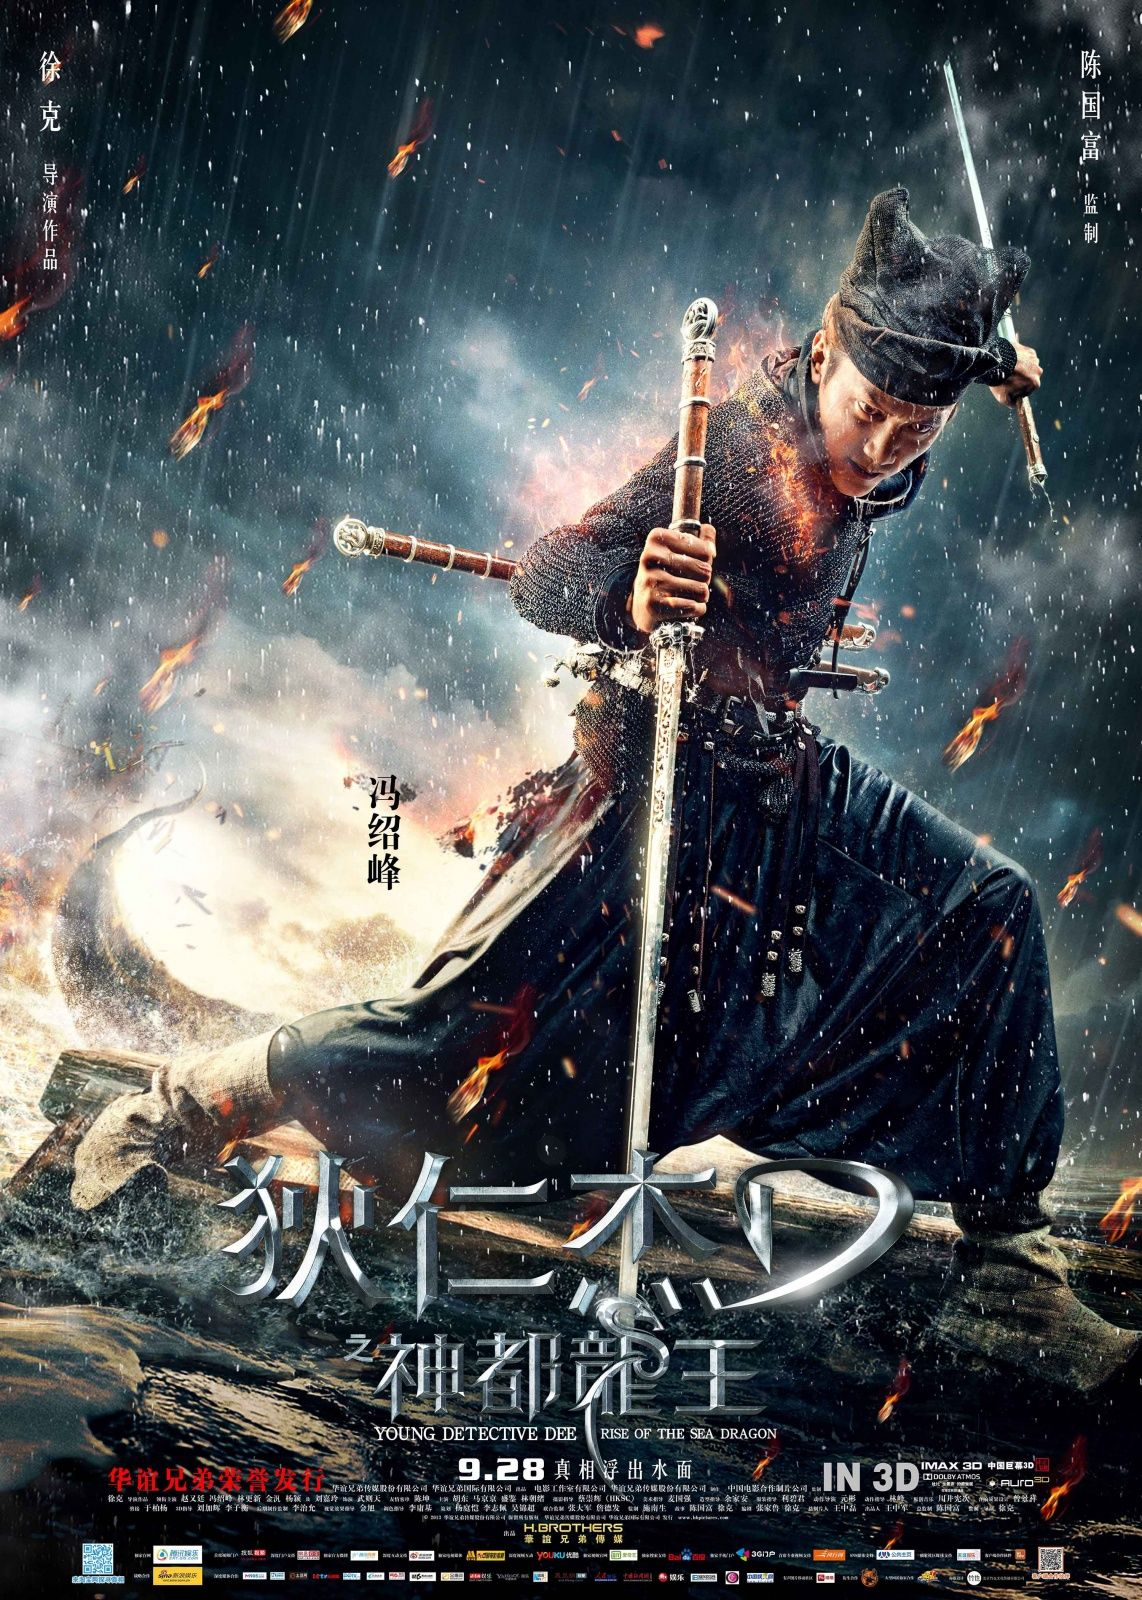 Young-Detective-Dee-Rise-of-the-Sea-Dragon-2013-Movie-Poster